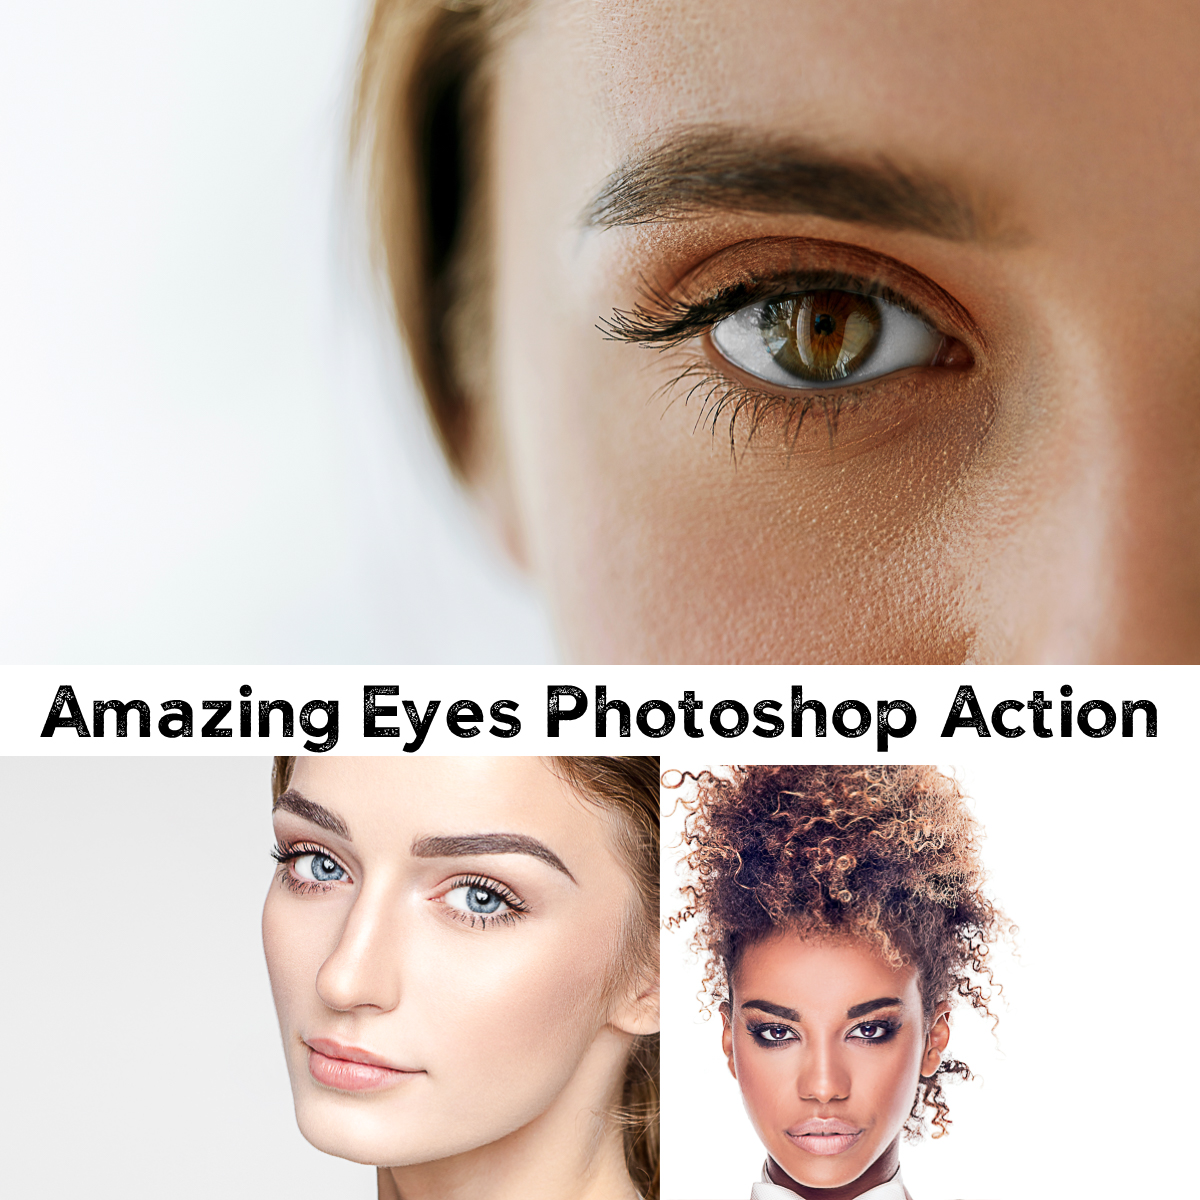 Amazing Eyes Photoshop Action | Free download